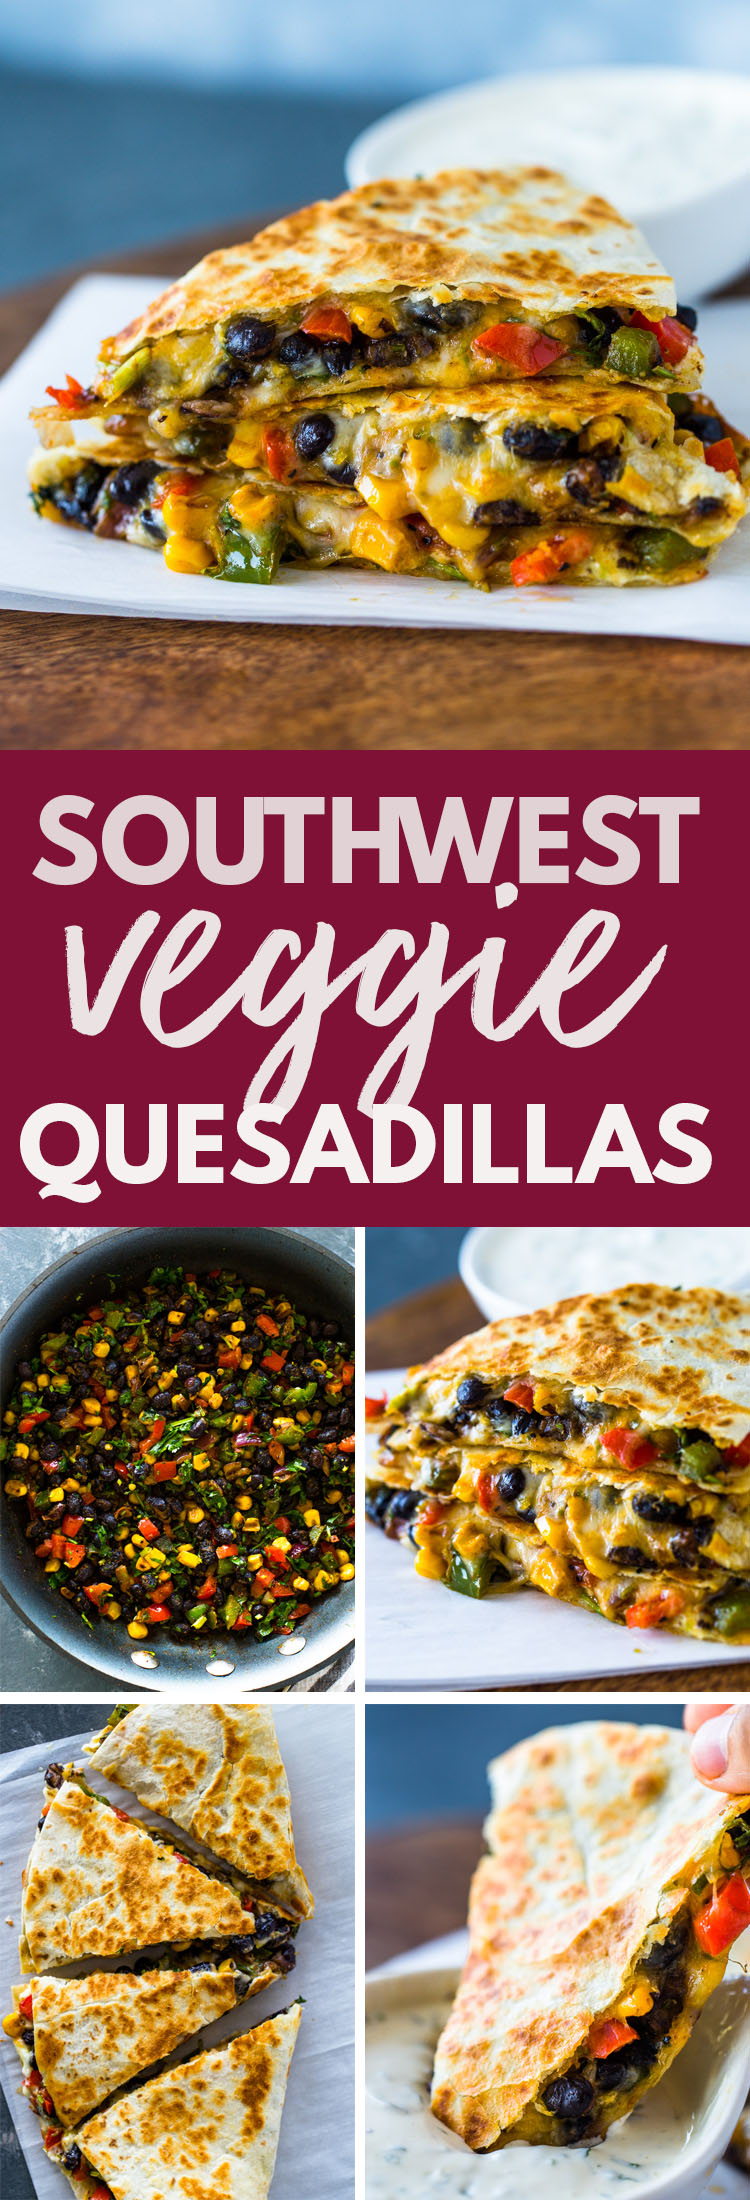 Southwest Veggie Quesadillas